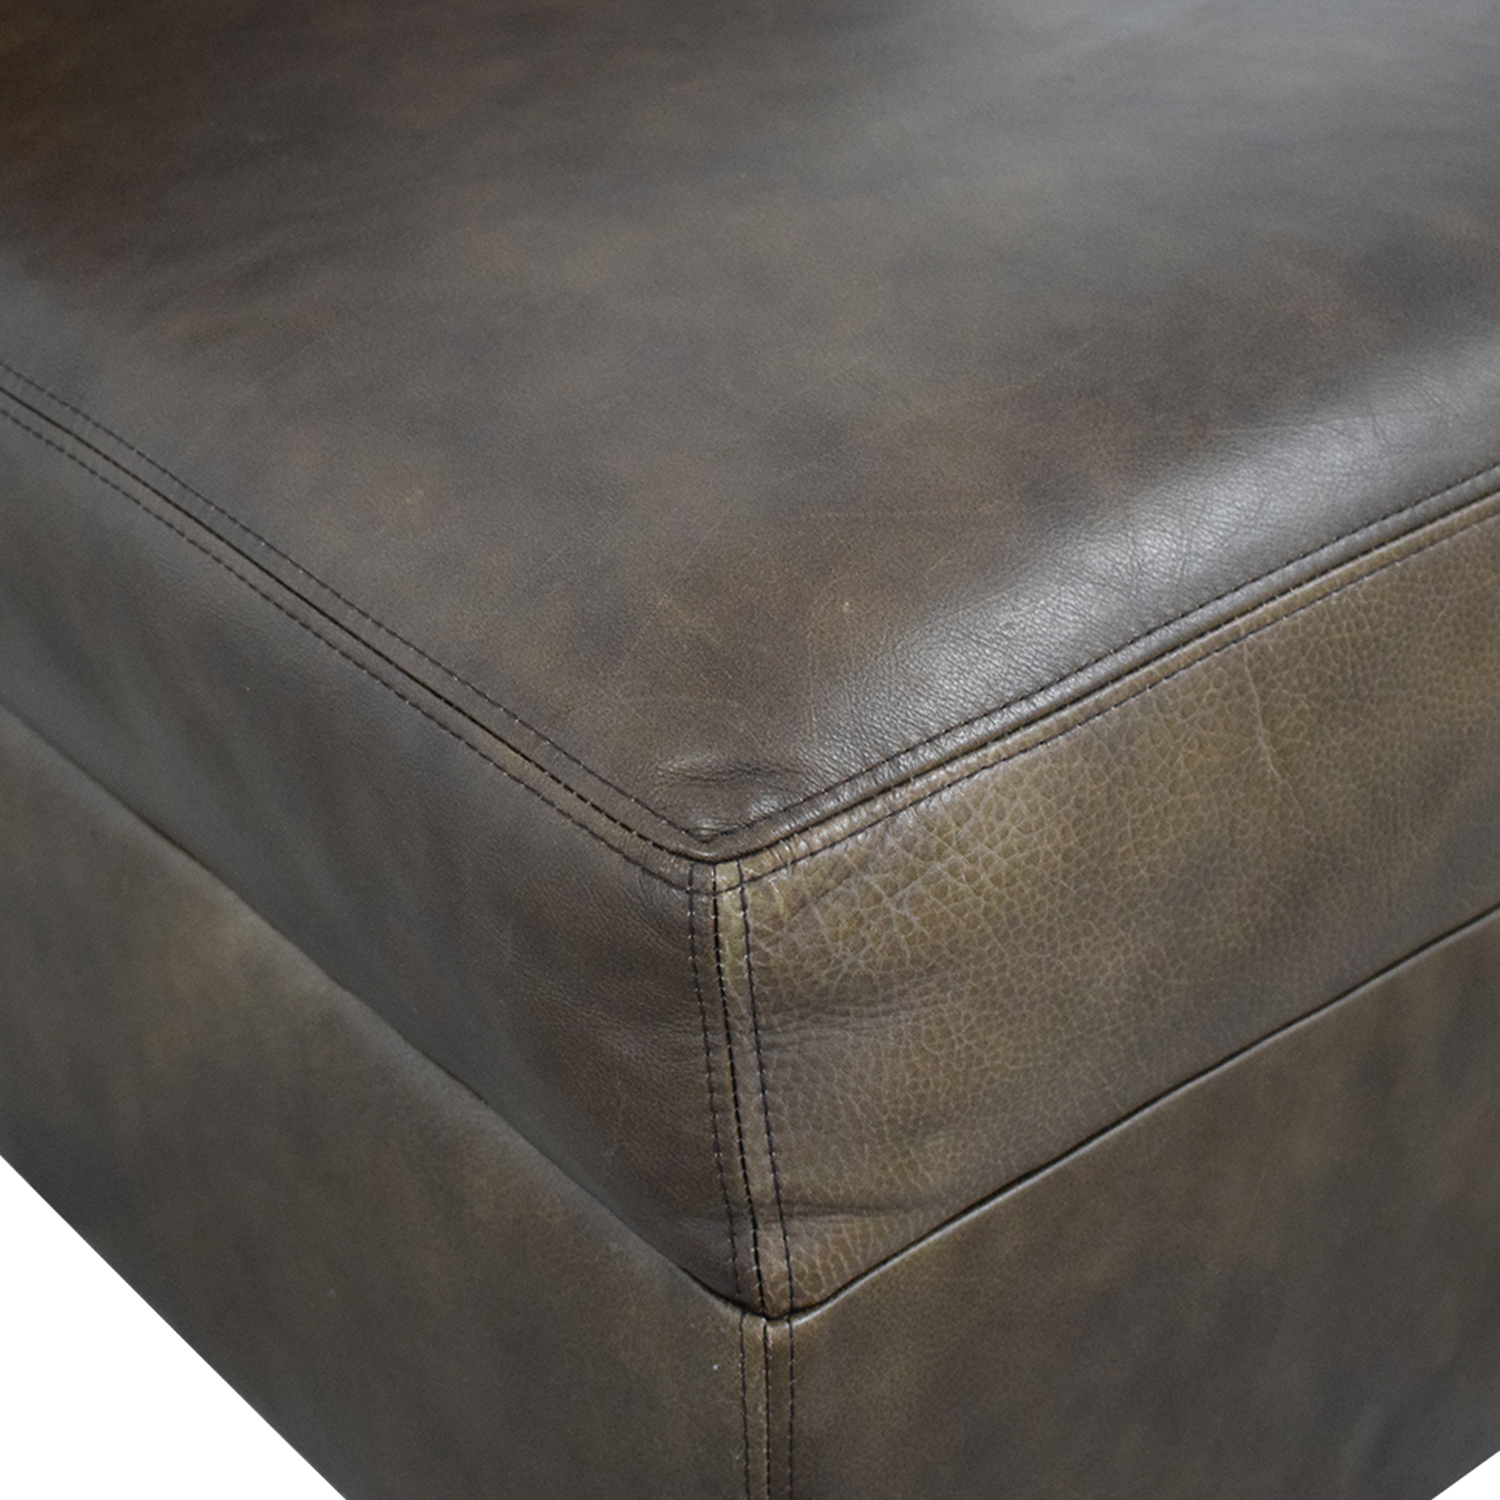 Pottery Barn Pottery Barn Leather Lounge Chair on sale